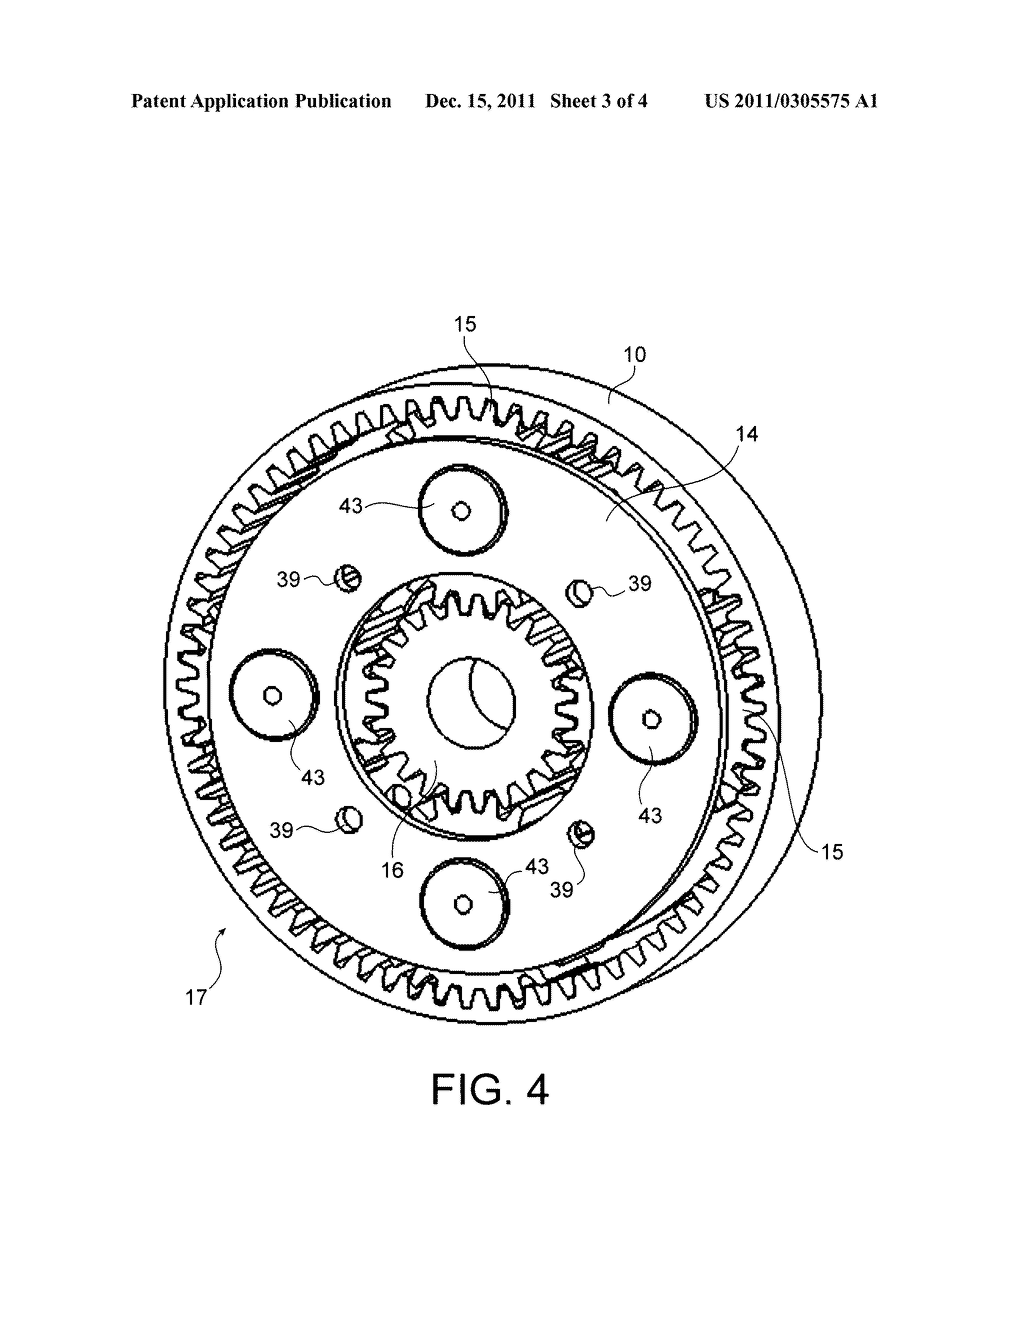 DEVICE WITH COUNTER-ROTATING PROPELLERS HAVING A PROPELLER PITCH